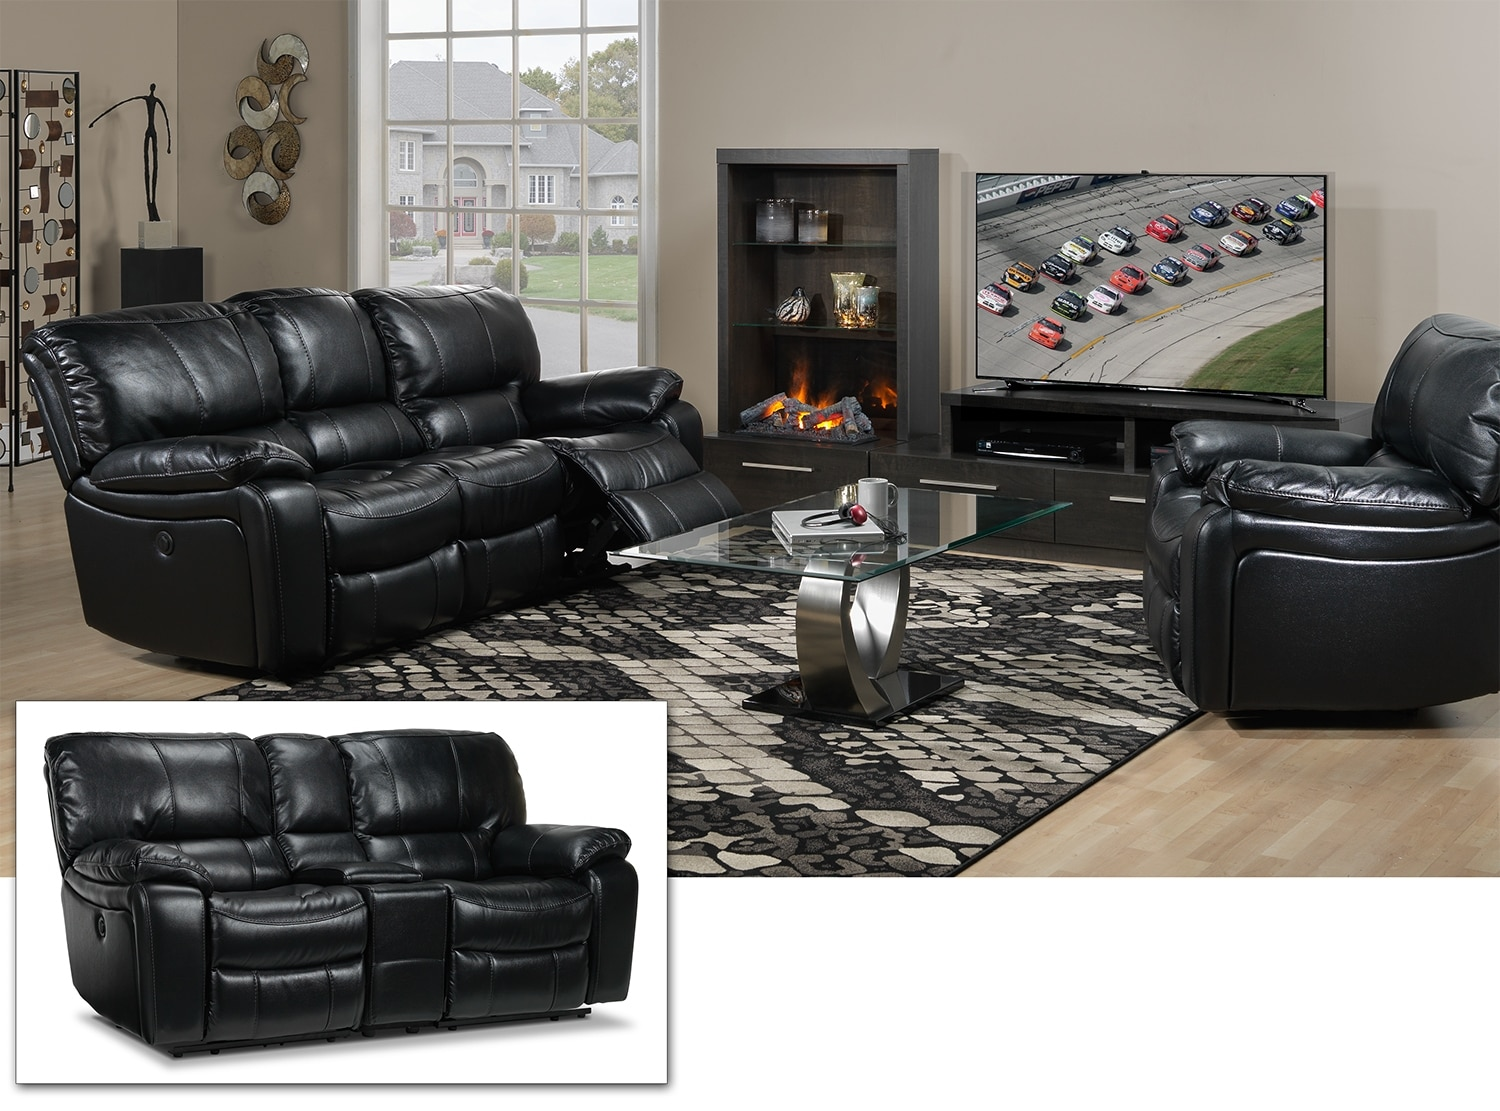 Santorini 3 Pc. Living Room Package - Black